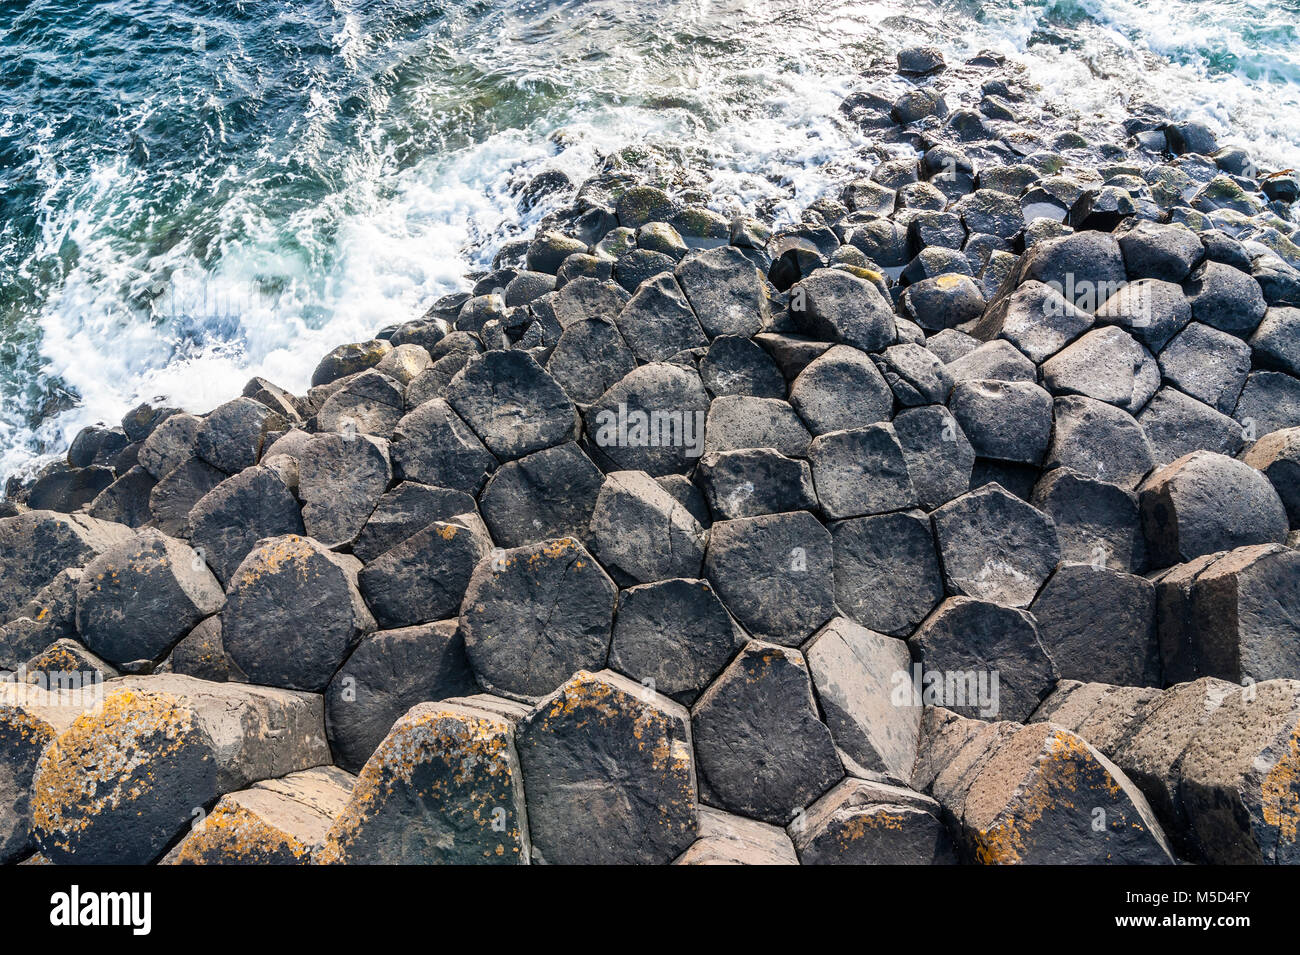 Giant's causeway, Northern Ireland, United Kingdom - Stock Image